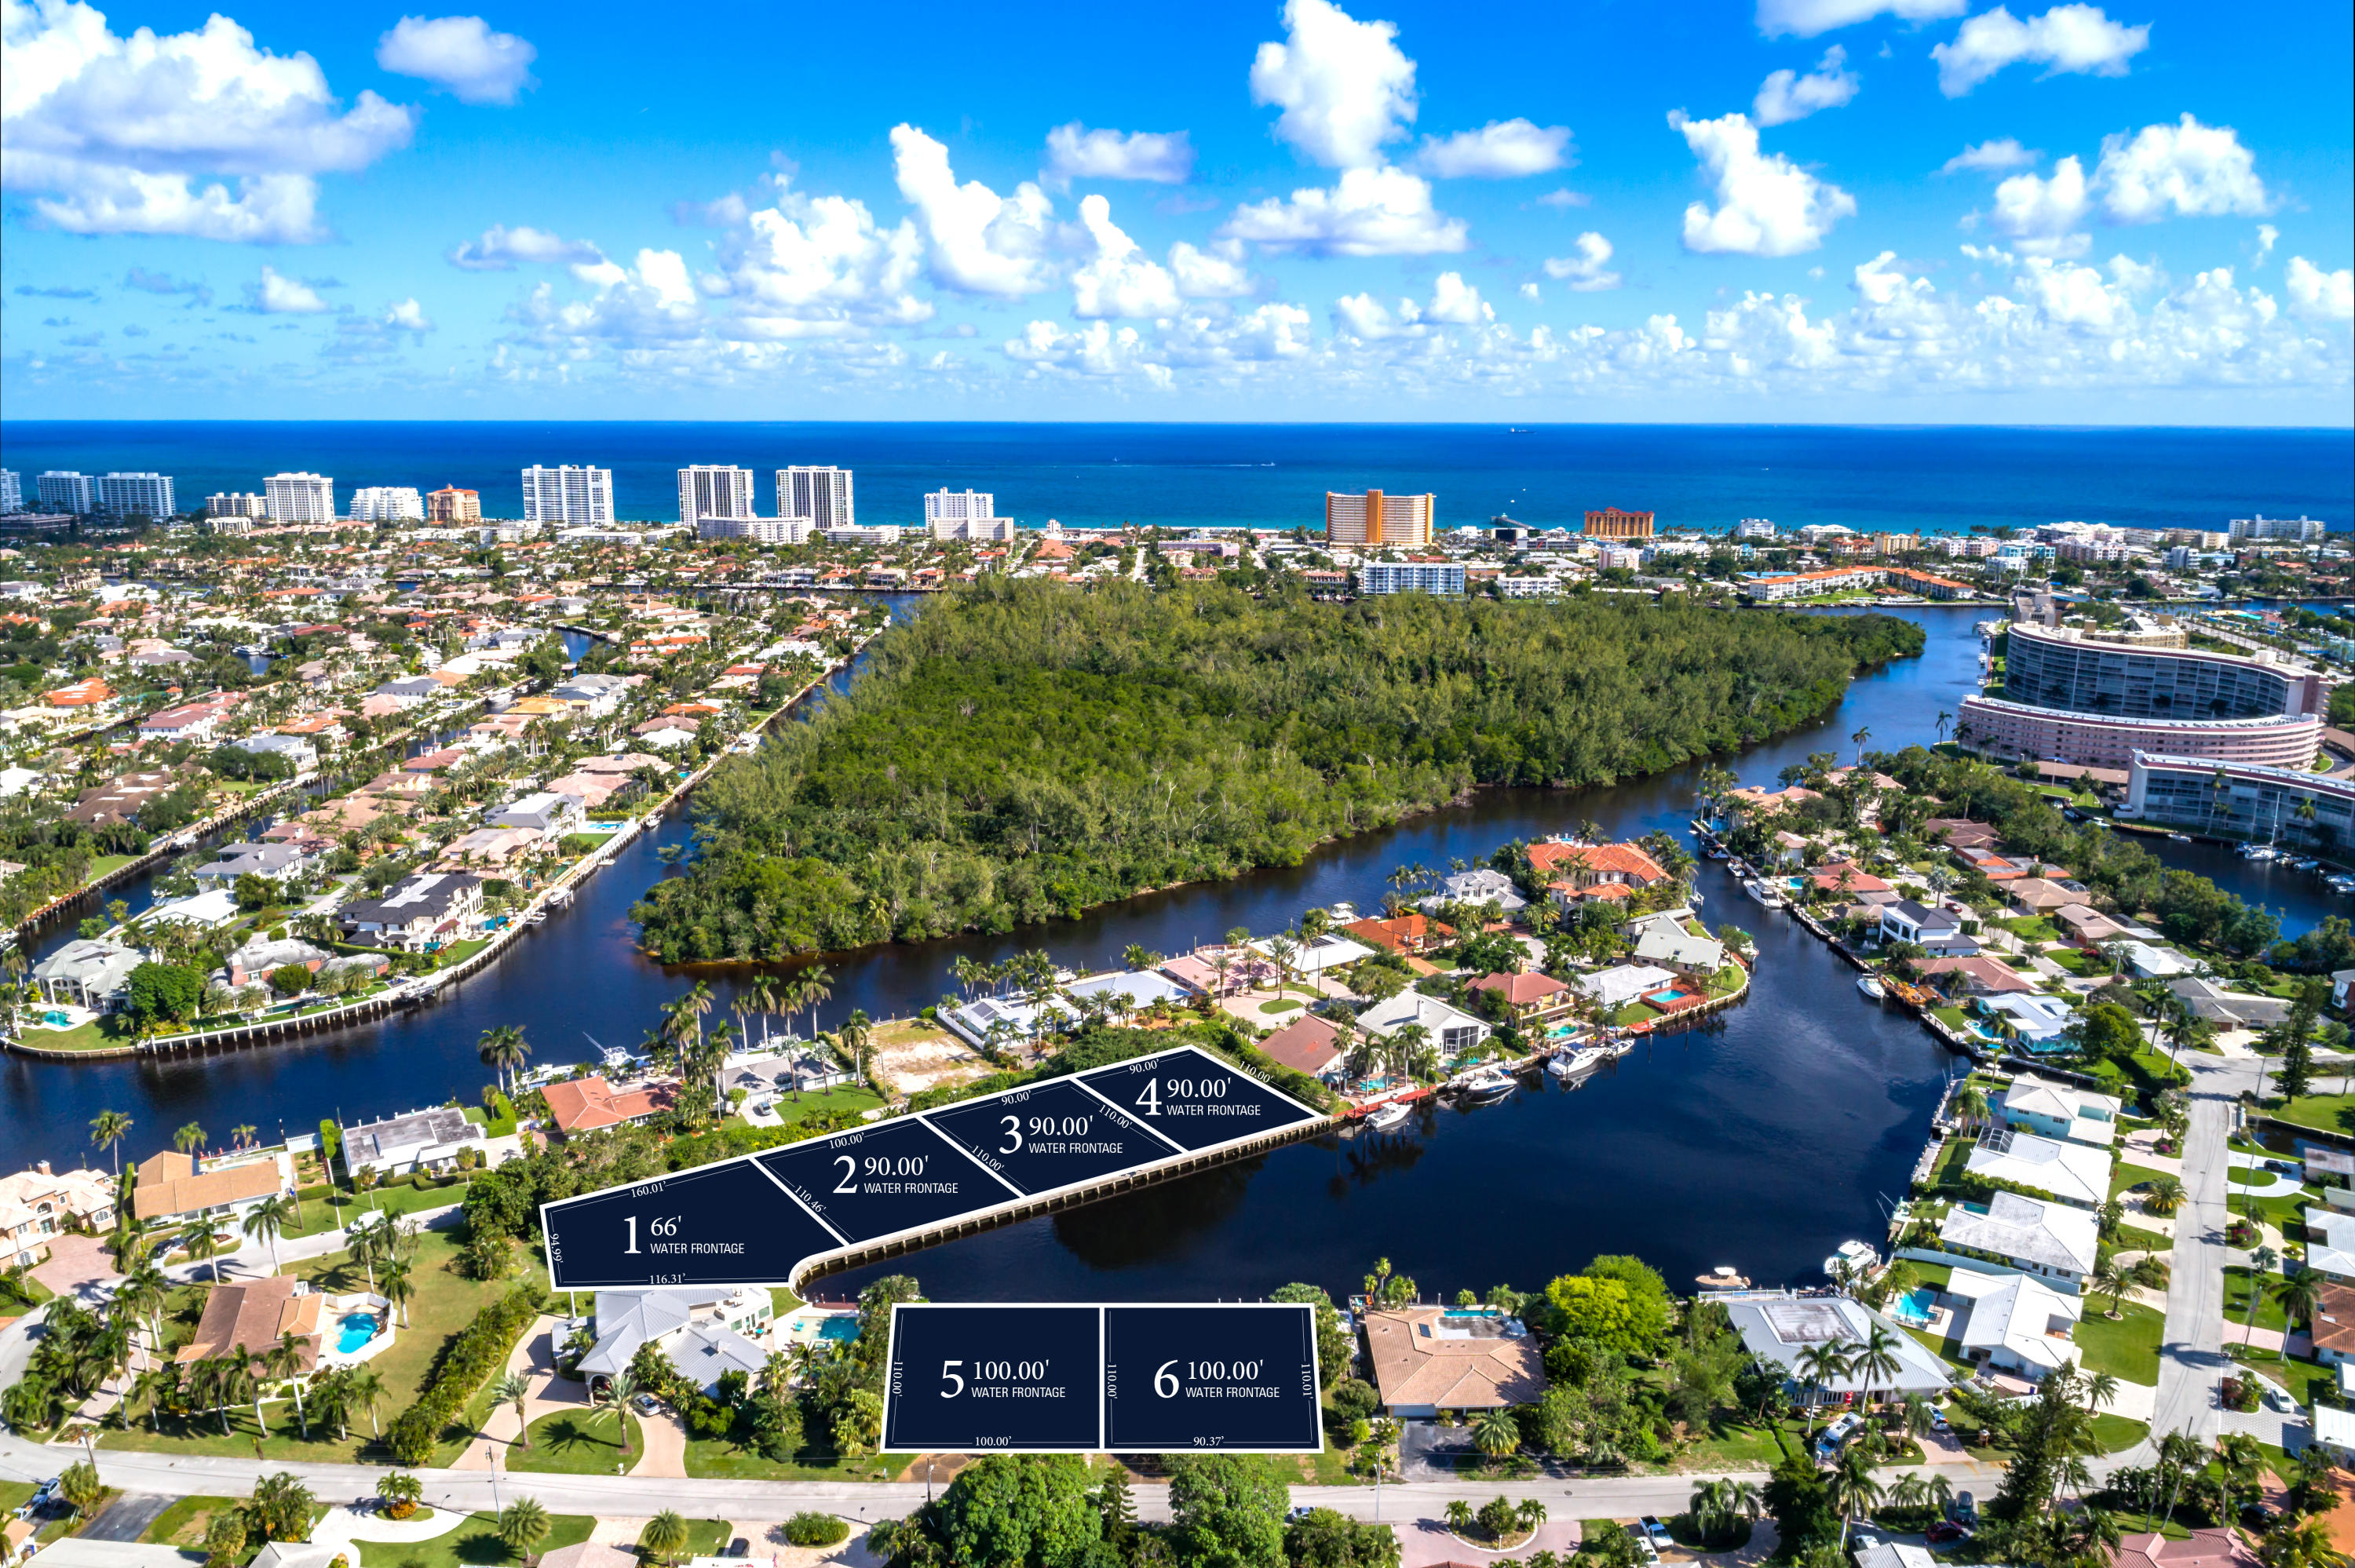 Photo of 64 Little Harbor Way, Deerfield Beach, FL 33441